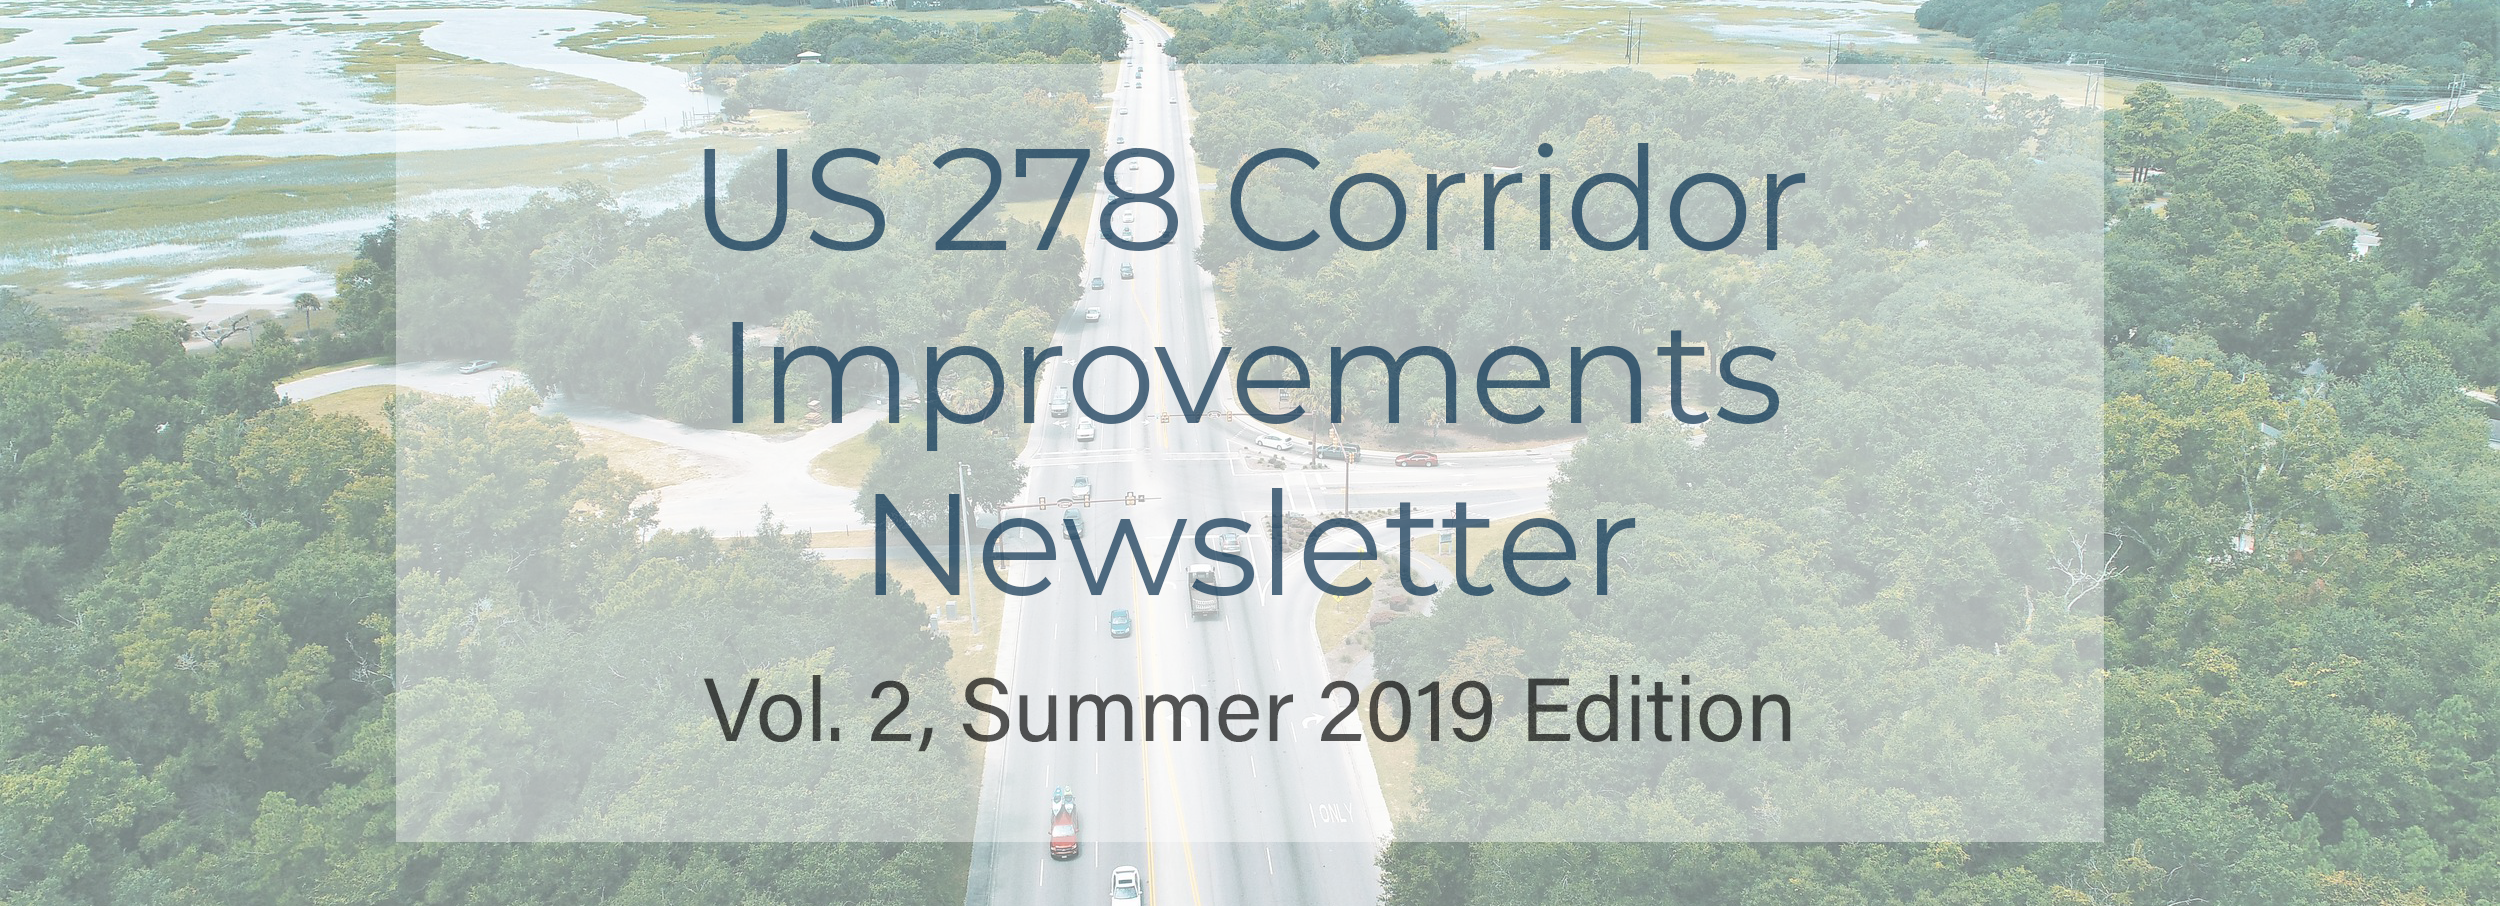 Newsletter_CoverImage_Template_Summer 2019.png